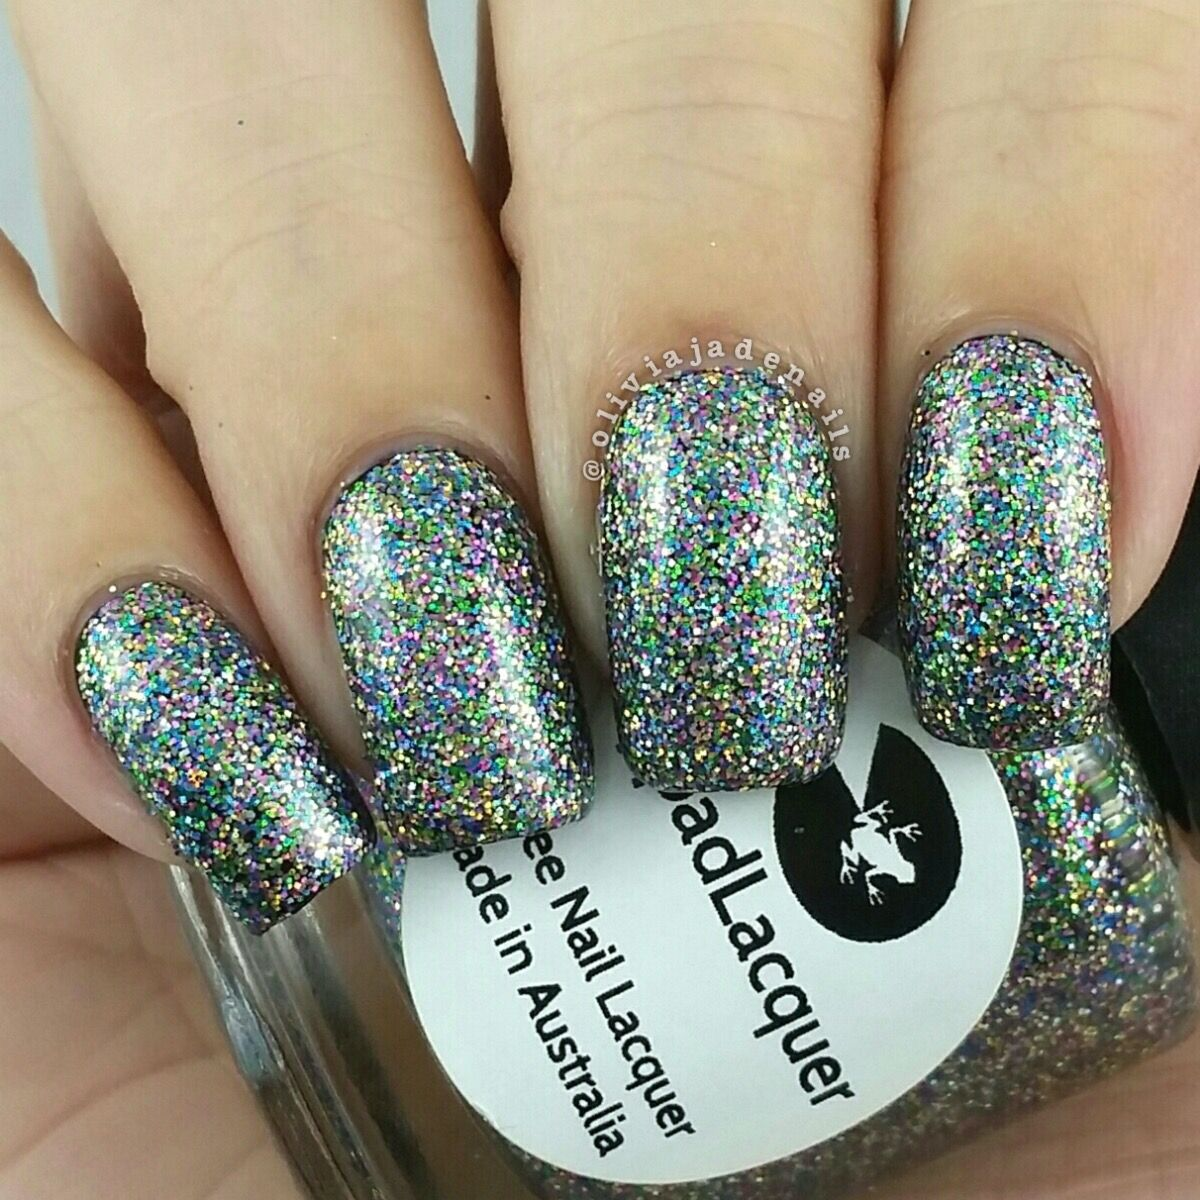 Lilypad Lacquer Fireworks Beauty So Fly Exclusive Swatches Review By Olivia Jade